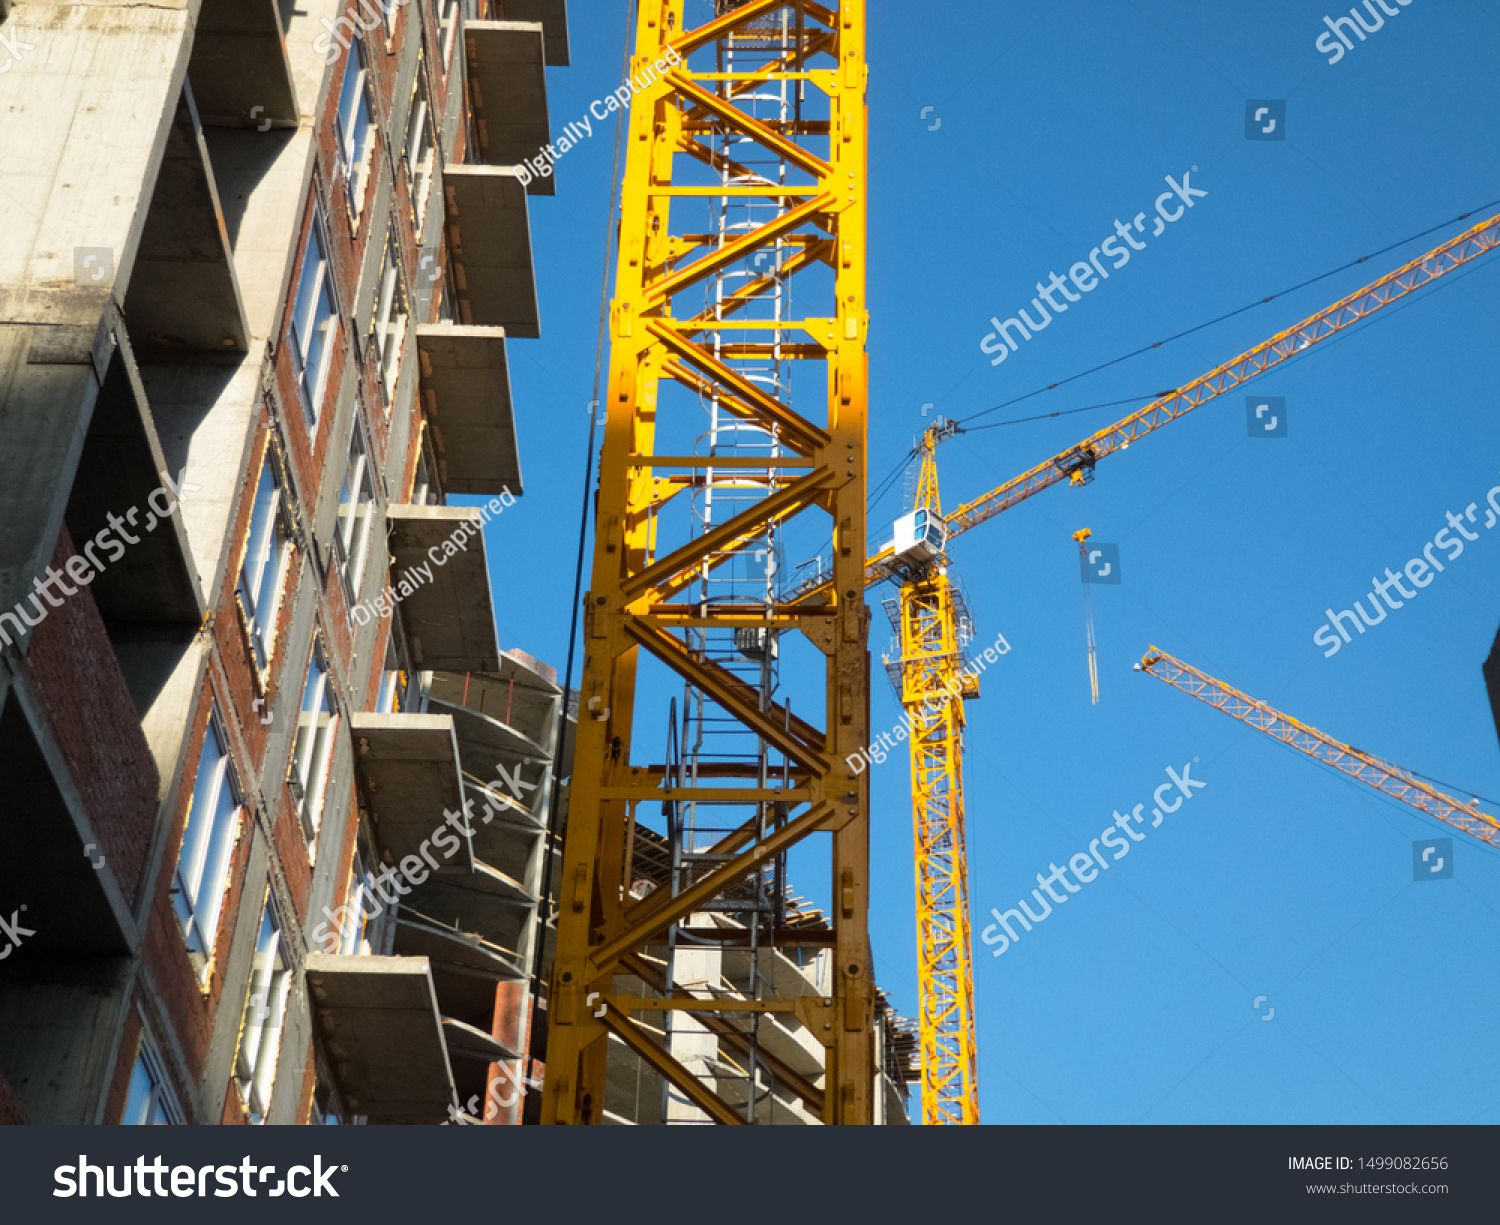 Building Construction On Monolithic Technology Construction Of The Building Concrete Frame Of T Social Media Design Graphics Graphics Design Ideas Background